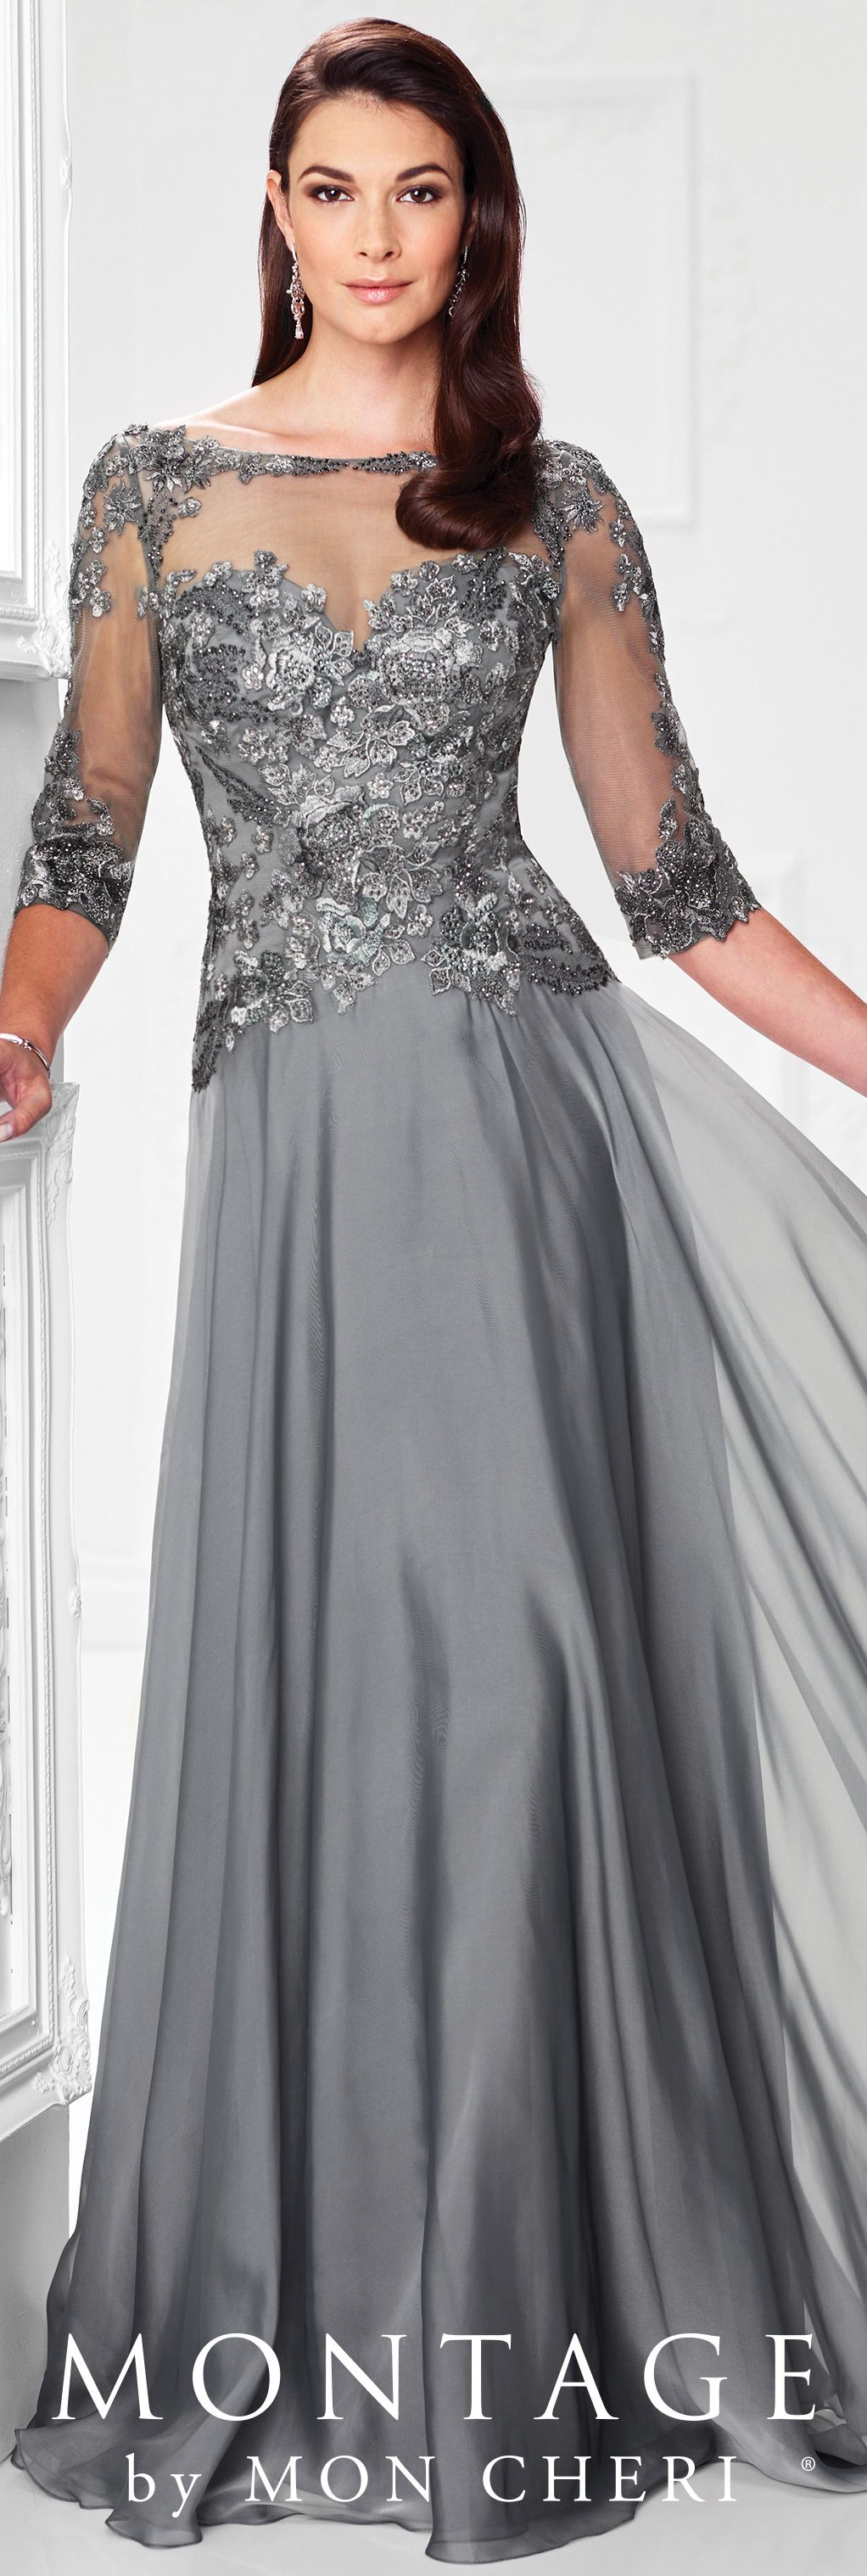 Montage by Mon Cheri - 117901 | Floral lace, Lace bodice and Pewter